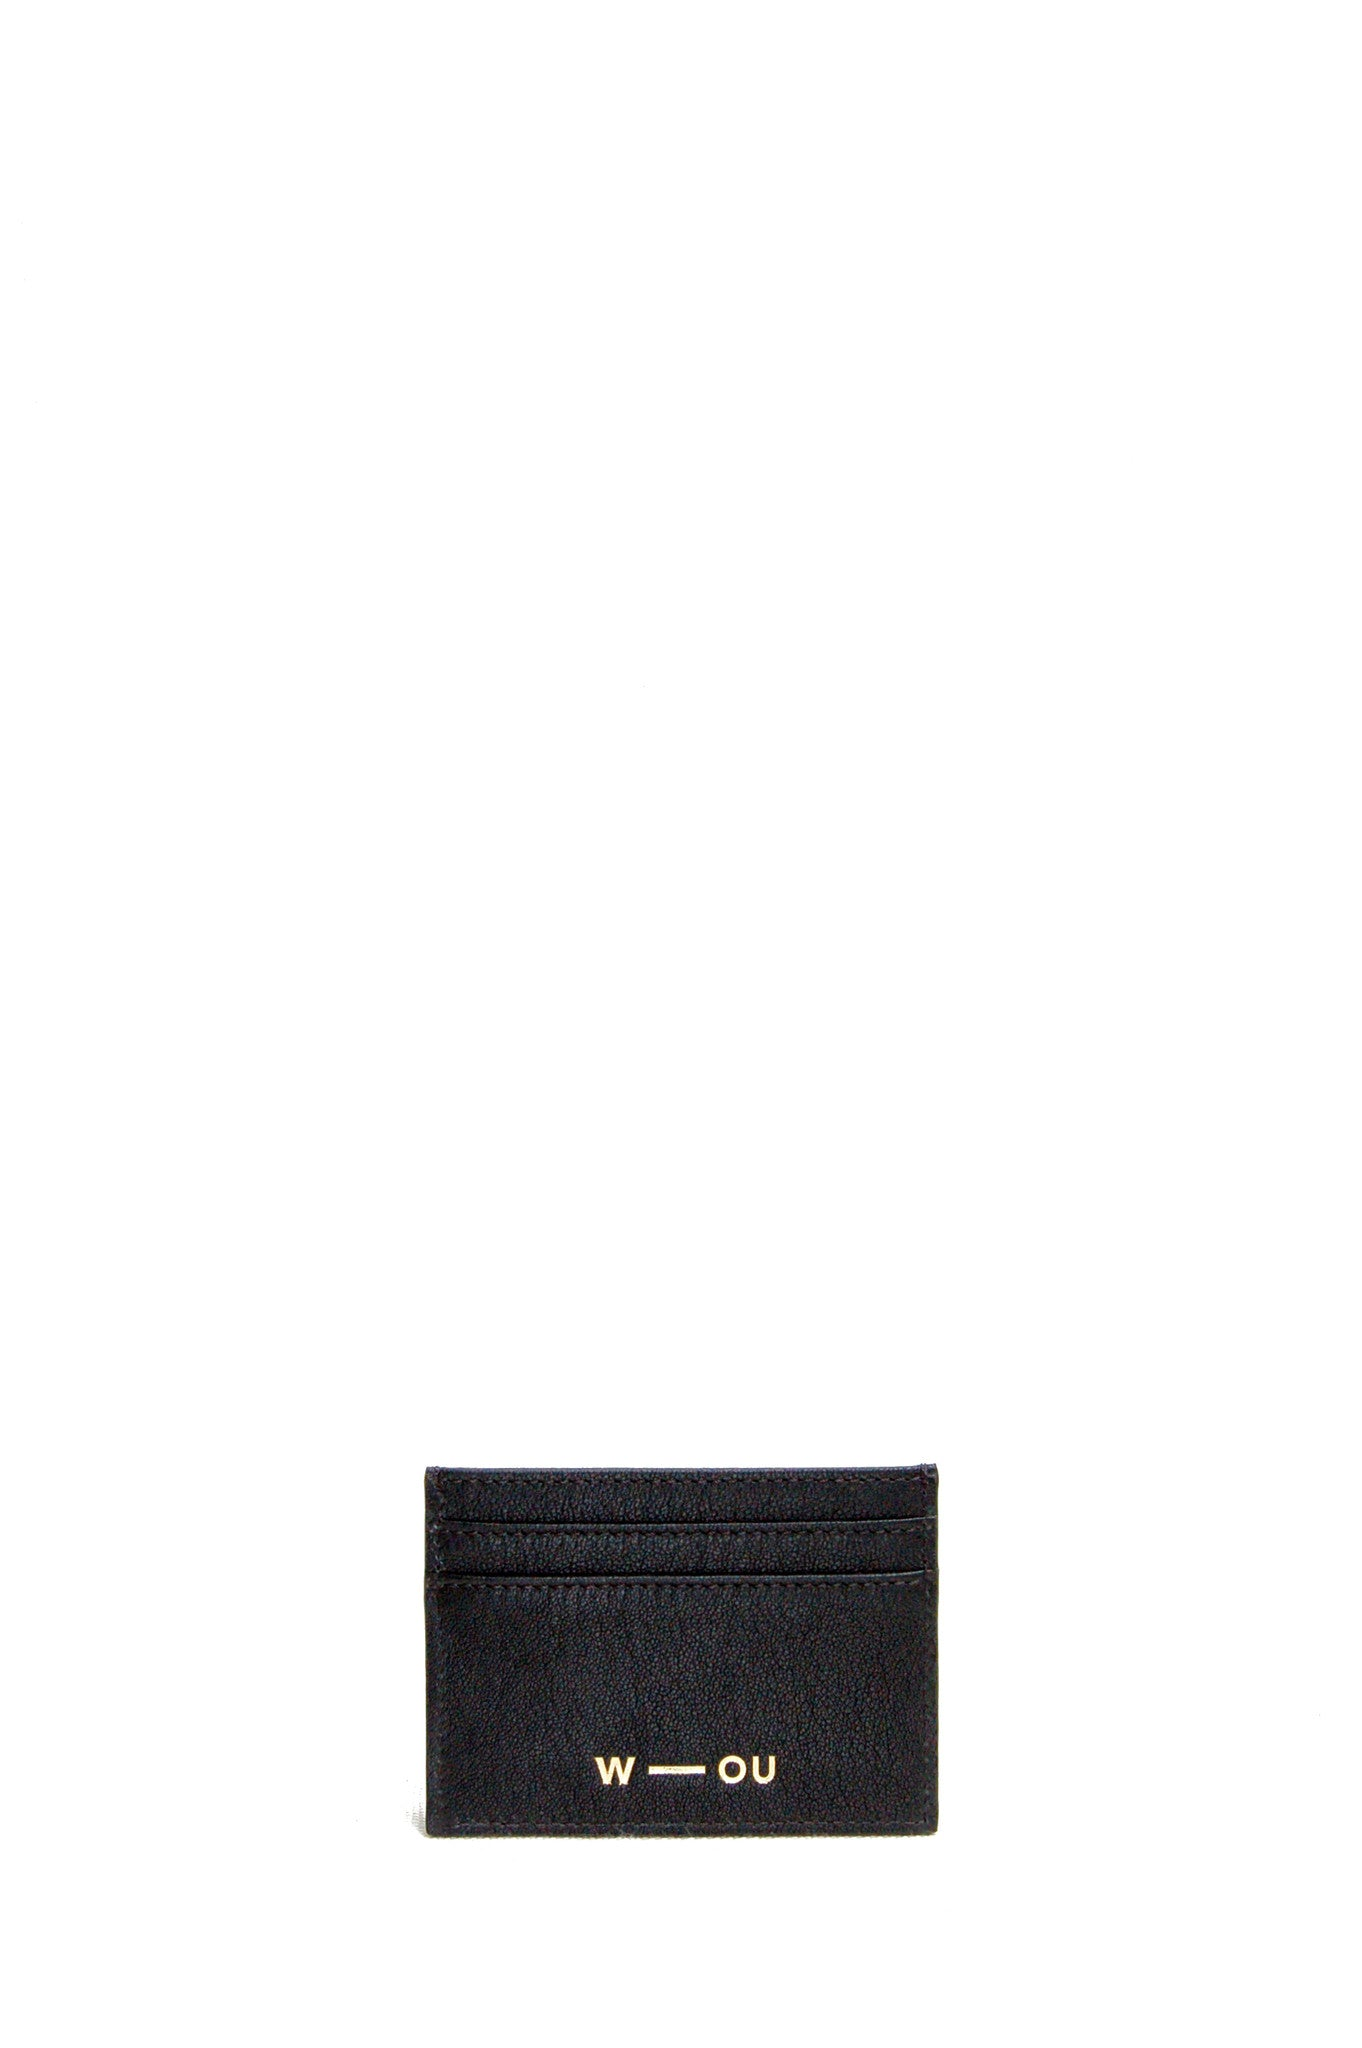 Wendee Ou: Gia cardholder black & grey   Accessories > Wallets,Accessories -  Hiphunters Shop